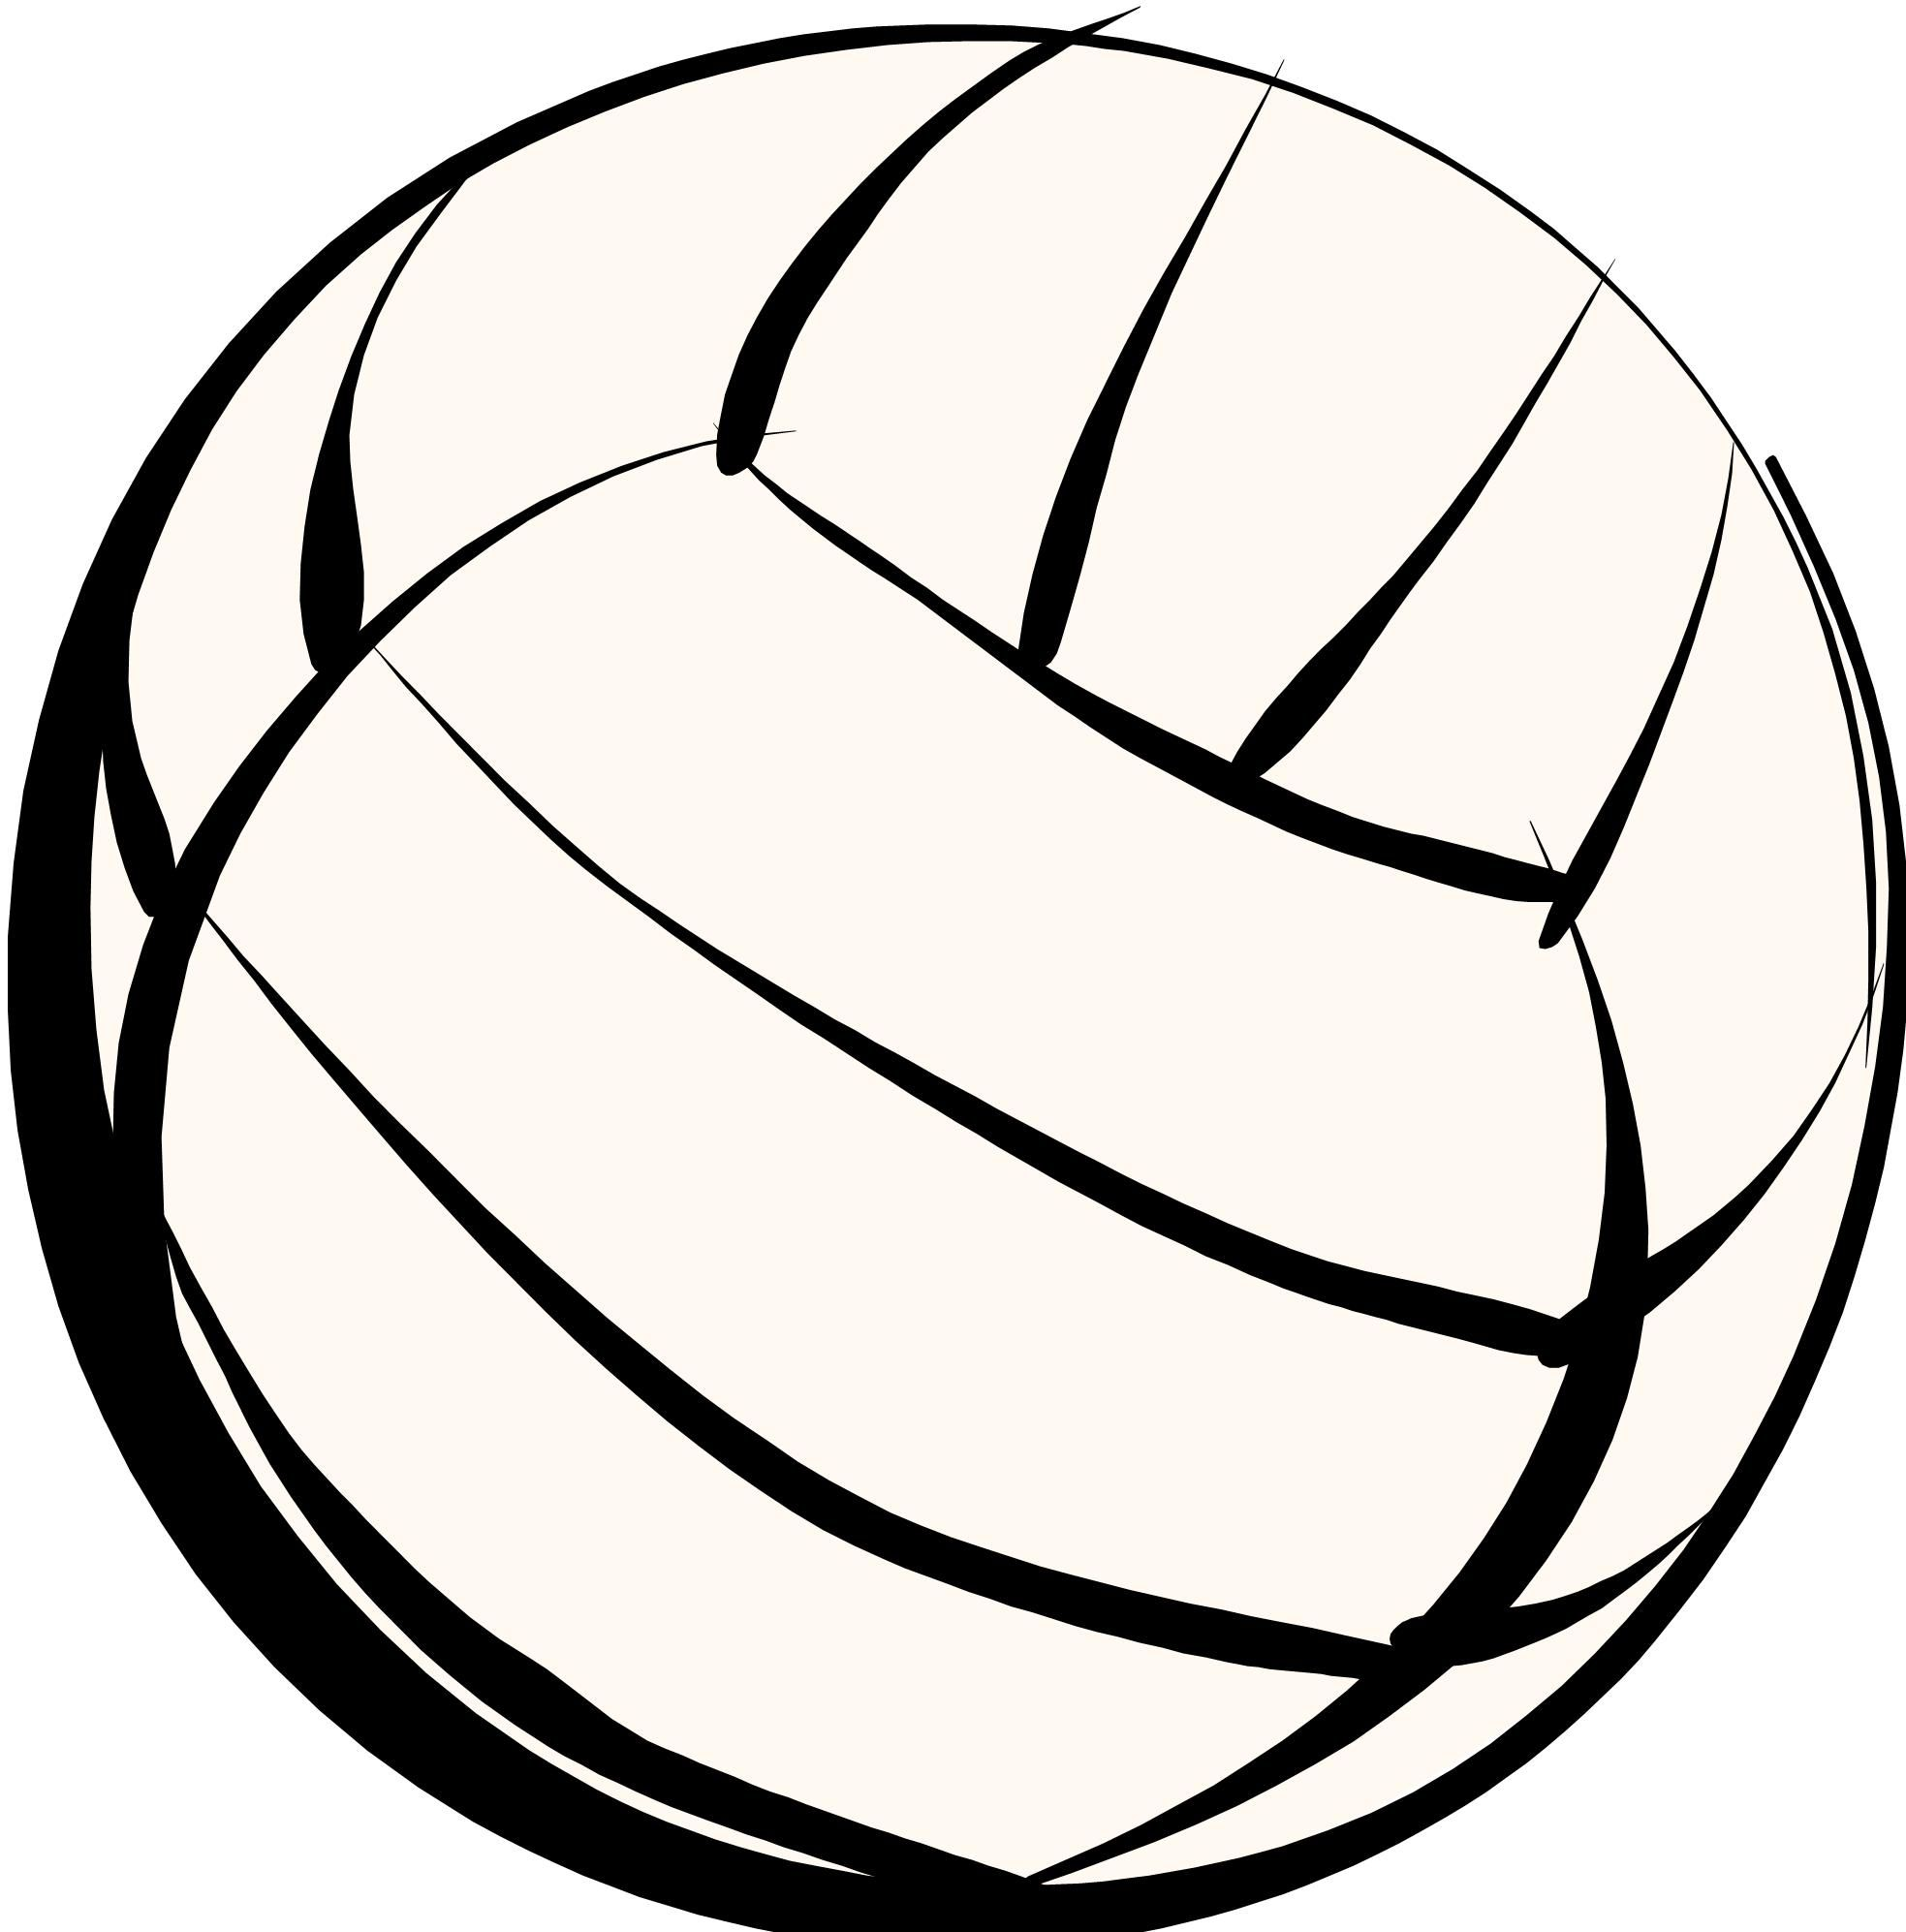 Small Volleyball Cliparts Free Download Clip Art Free Clip Art Volleyball Pictures Volleyball Volleyball Images